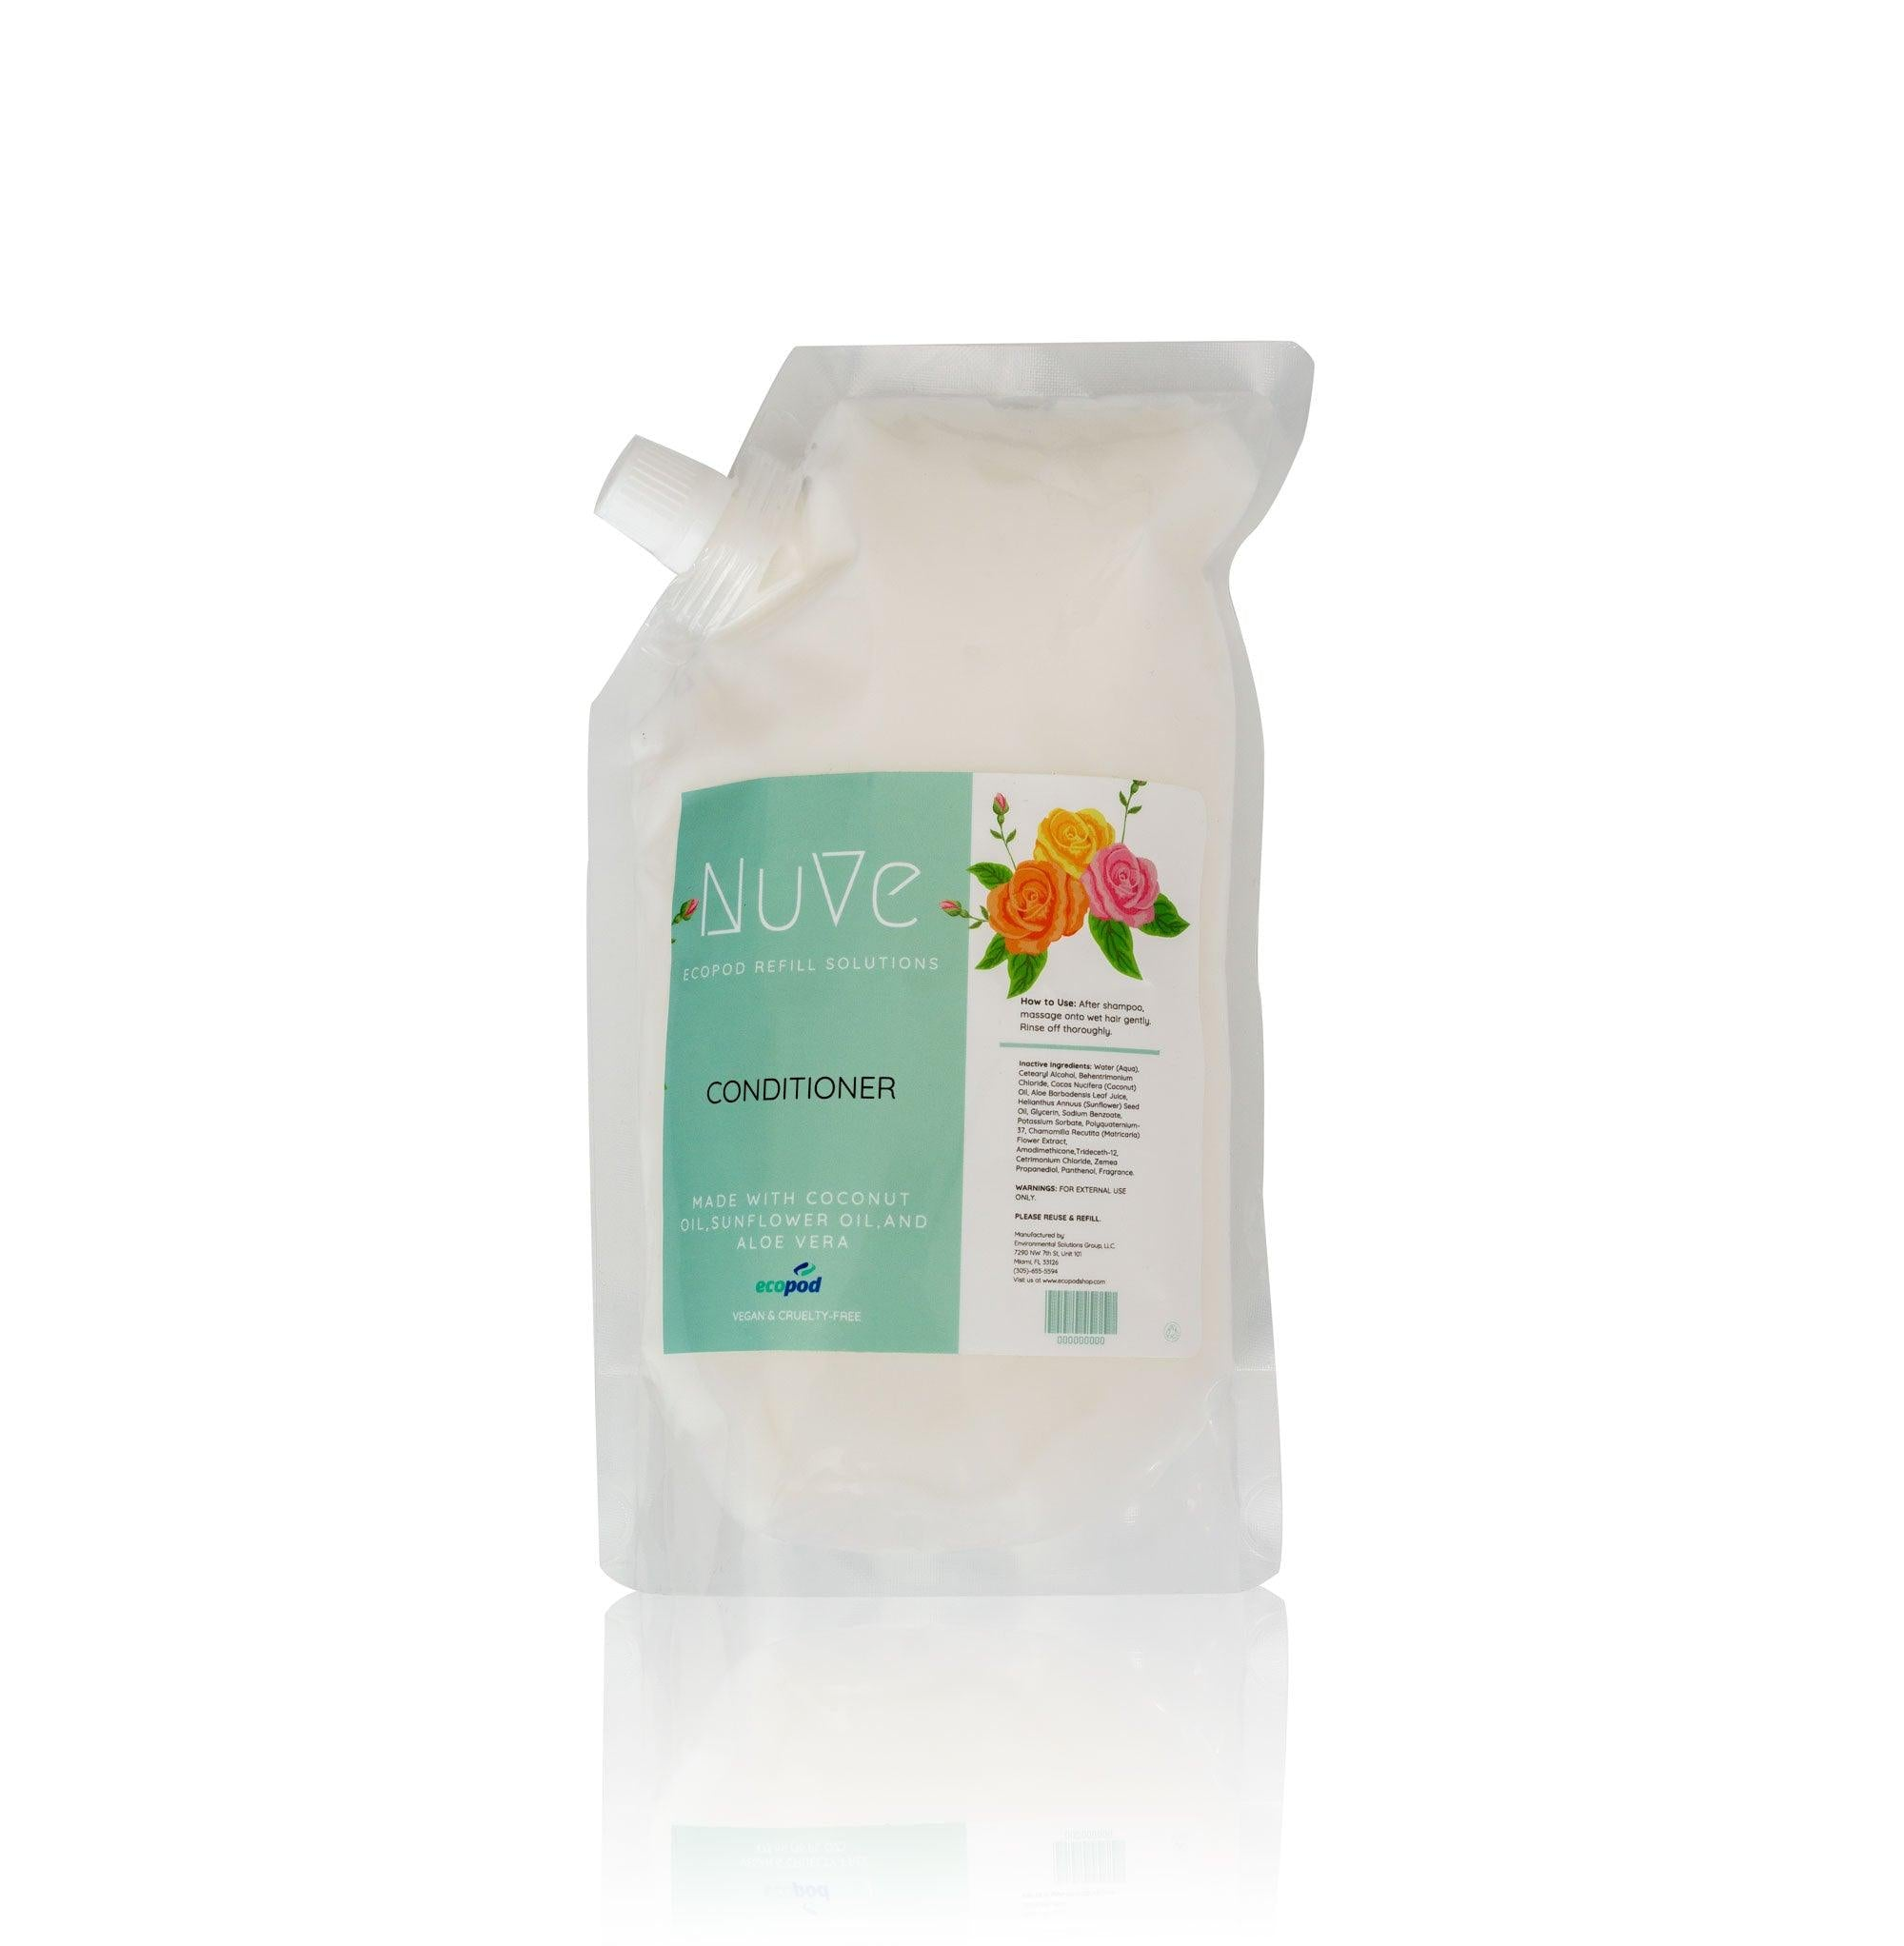 Hair Conditioner Refill Pouch